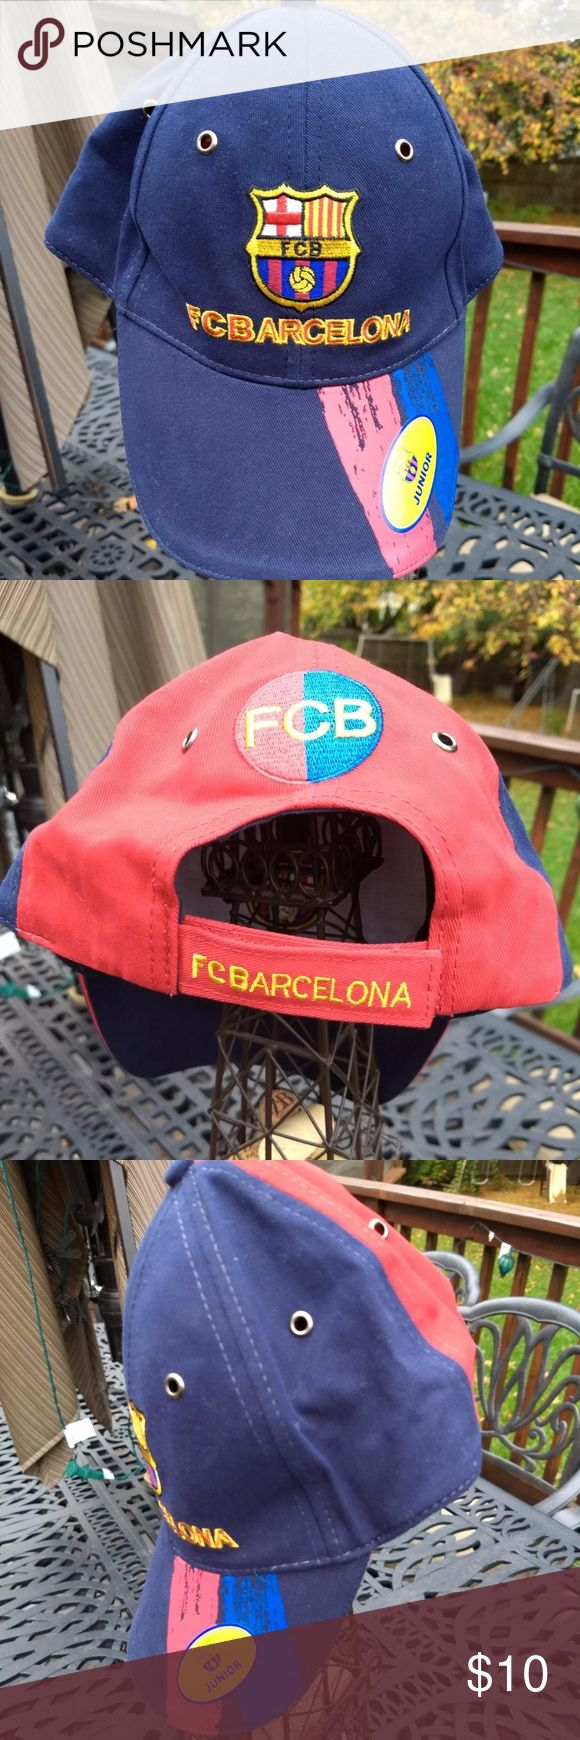 F.C. Barcelona Kids Cap NWT Great Gift!! Futbol Club Barcelona Professional football club cap NWT, never worn Junior size Adjustable size with Velcro closure Solid construction with wonderfully detailed patches and stitching Great gift Futbol CLub Barcelona Accessories Hats